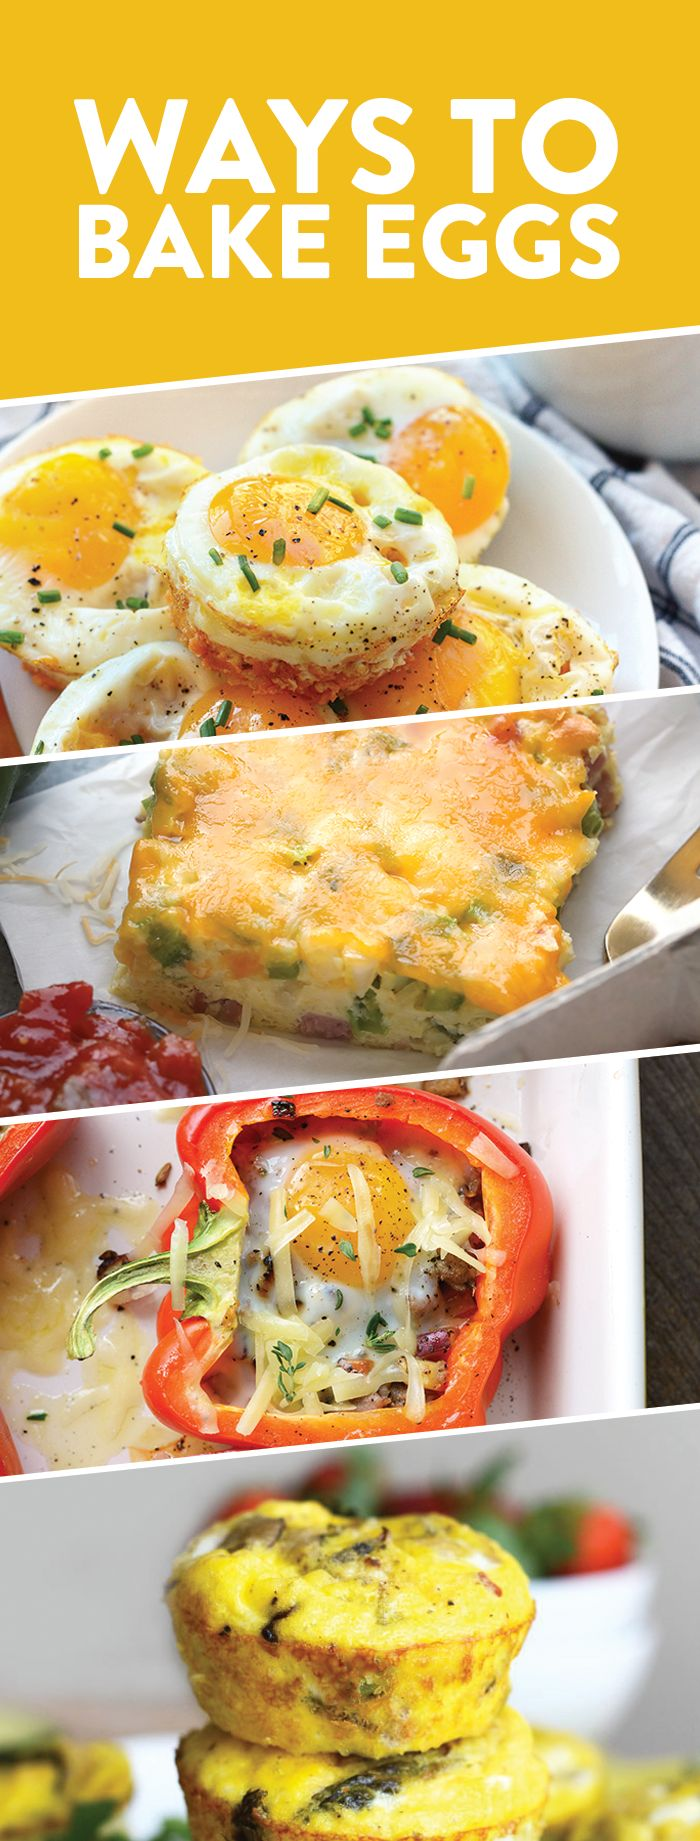 10 Ways to Bake Eggs in the Oven - Fit Foodie Finds